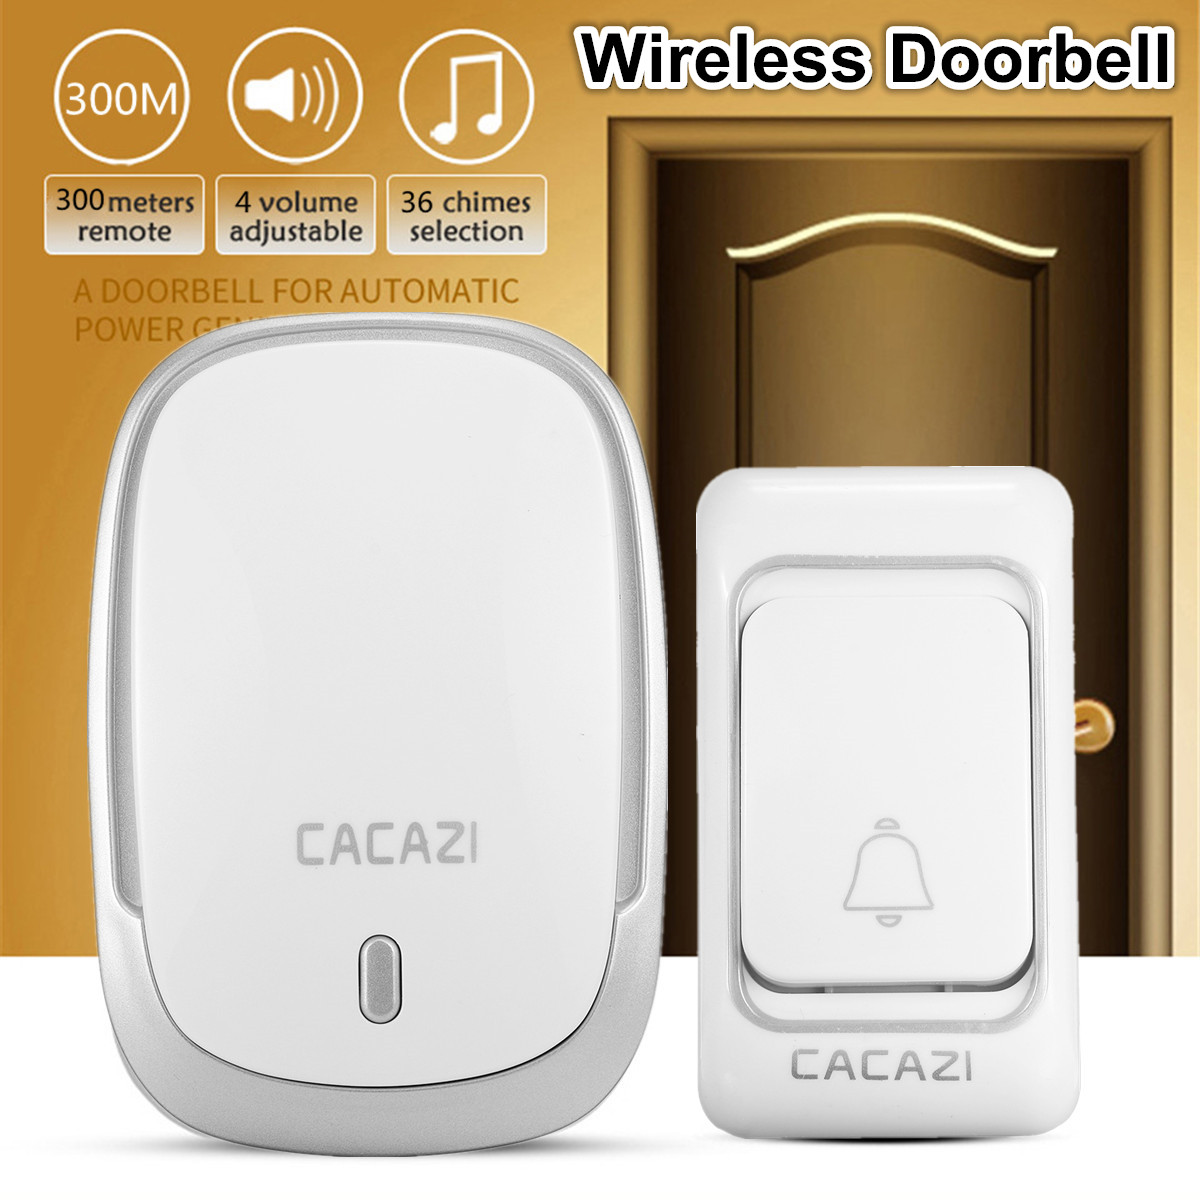 220V EU Plug 300M Waterproof LED Intelligent Home Wireless Doorbell 36 Songs 36 Music Door Ring for Homes Security Anti-interfer220V EU Plug 300M Waterproof LED Intelligent Home Wireless Doorbell 36 Songs 36 Music Door Ring for Homes Security Anti-interfer